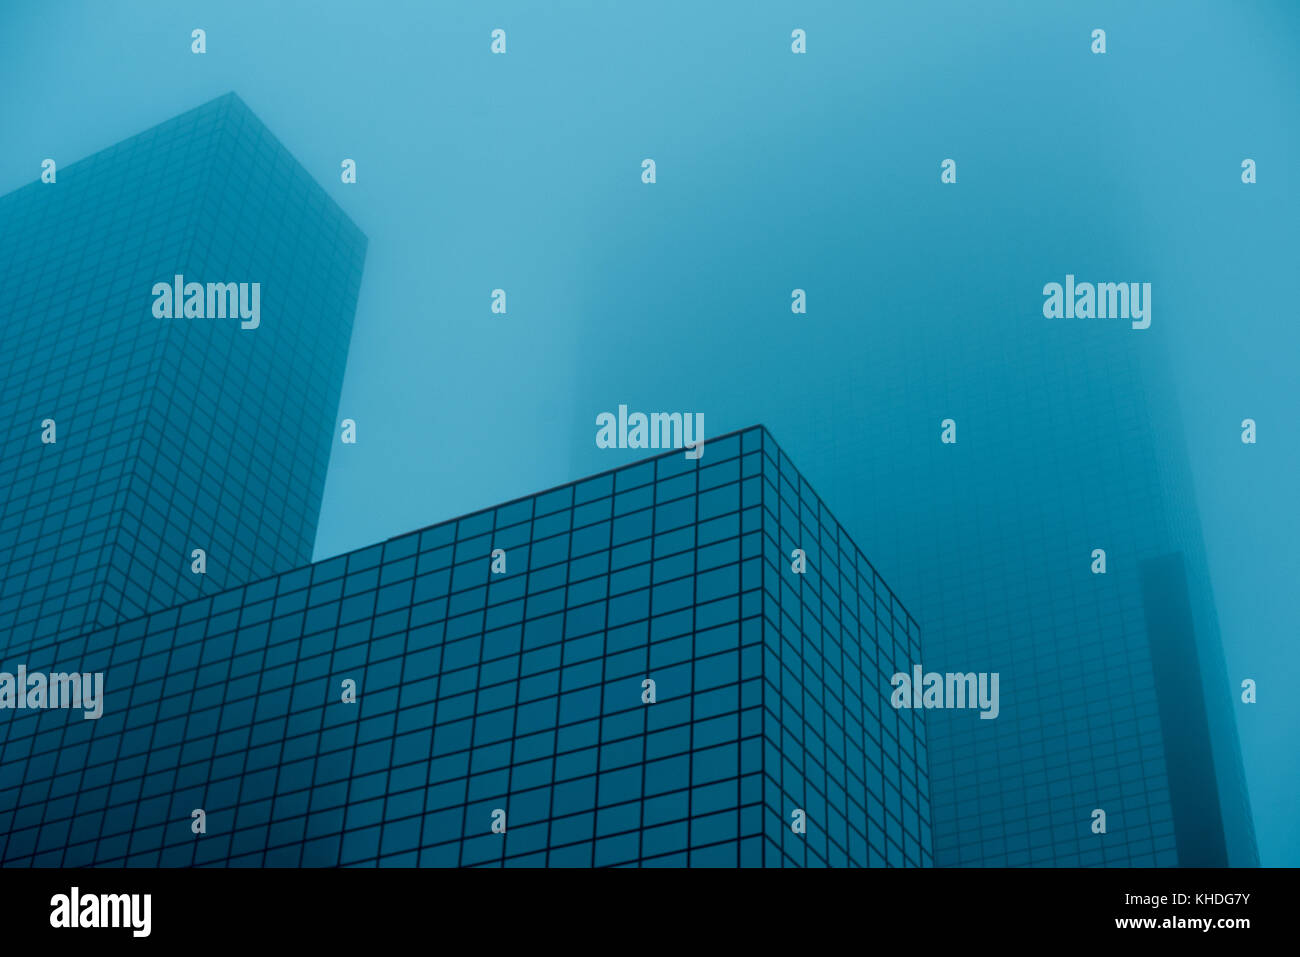 Tall skyscrapers disappearing into fog Stock Photo